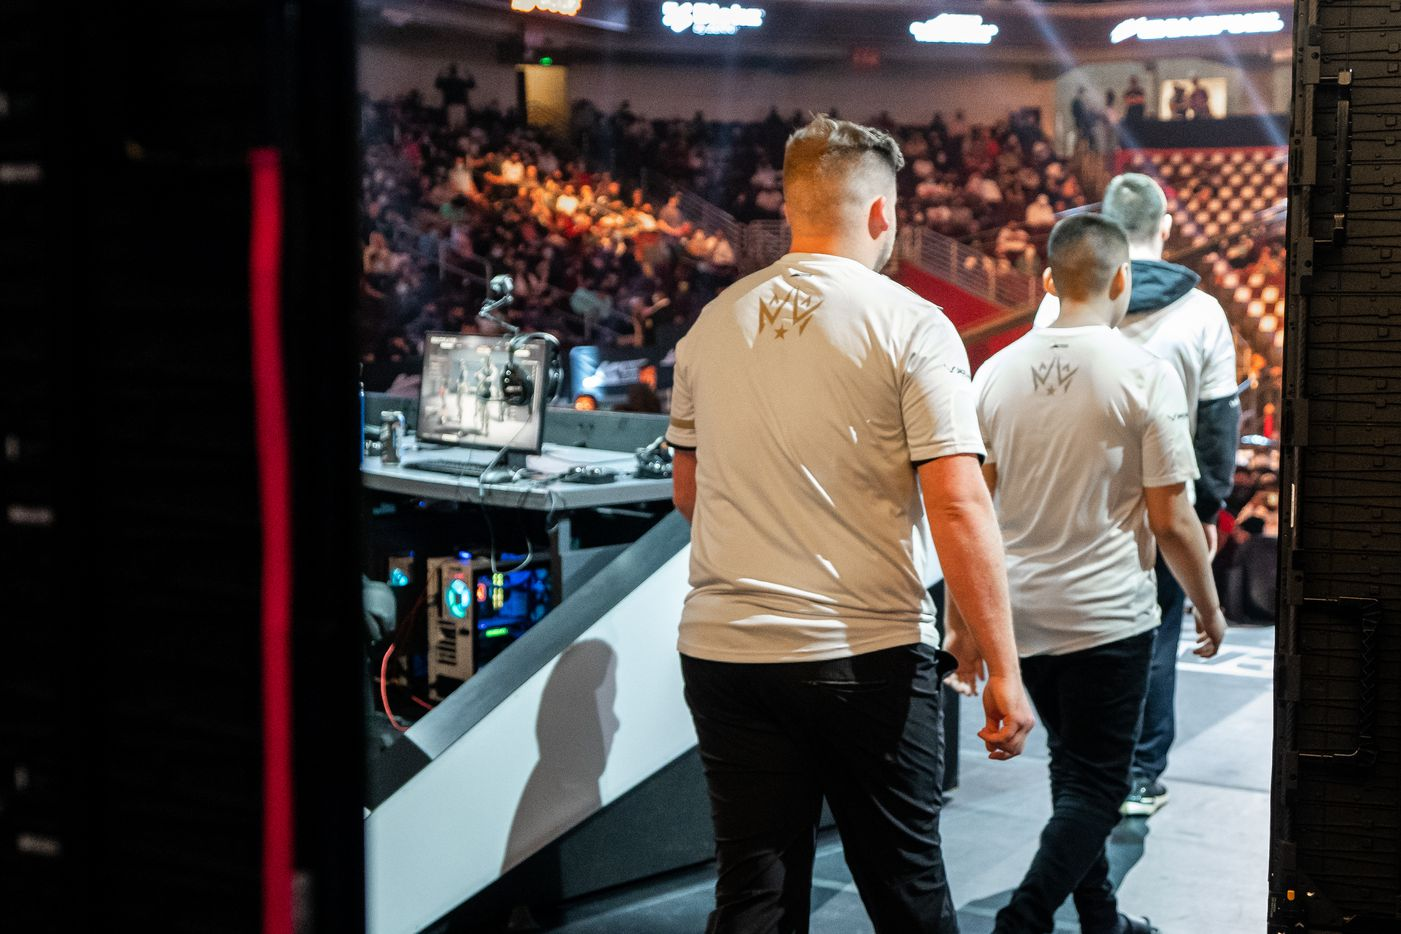 The Dallas Empire take the stage as they're introduced for their elimination match against the Toronto Ultra at the Call of Duty league playoffs at the Galen Center on Saturday, August 21, 2021 in Los Angeles, California. (Justin L. Stewart/Special Contributor)